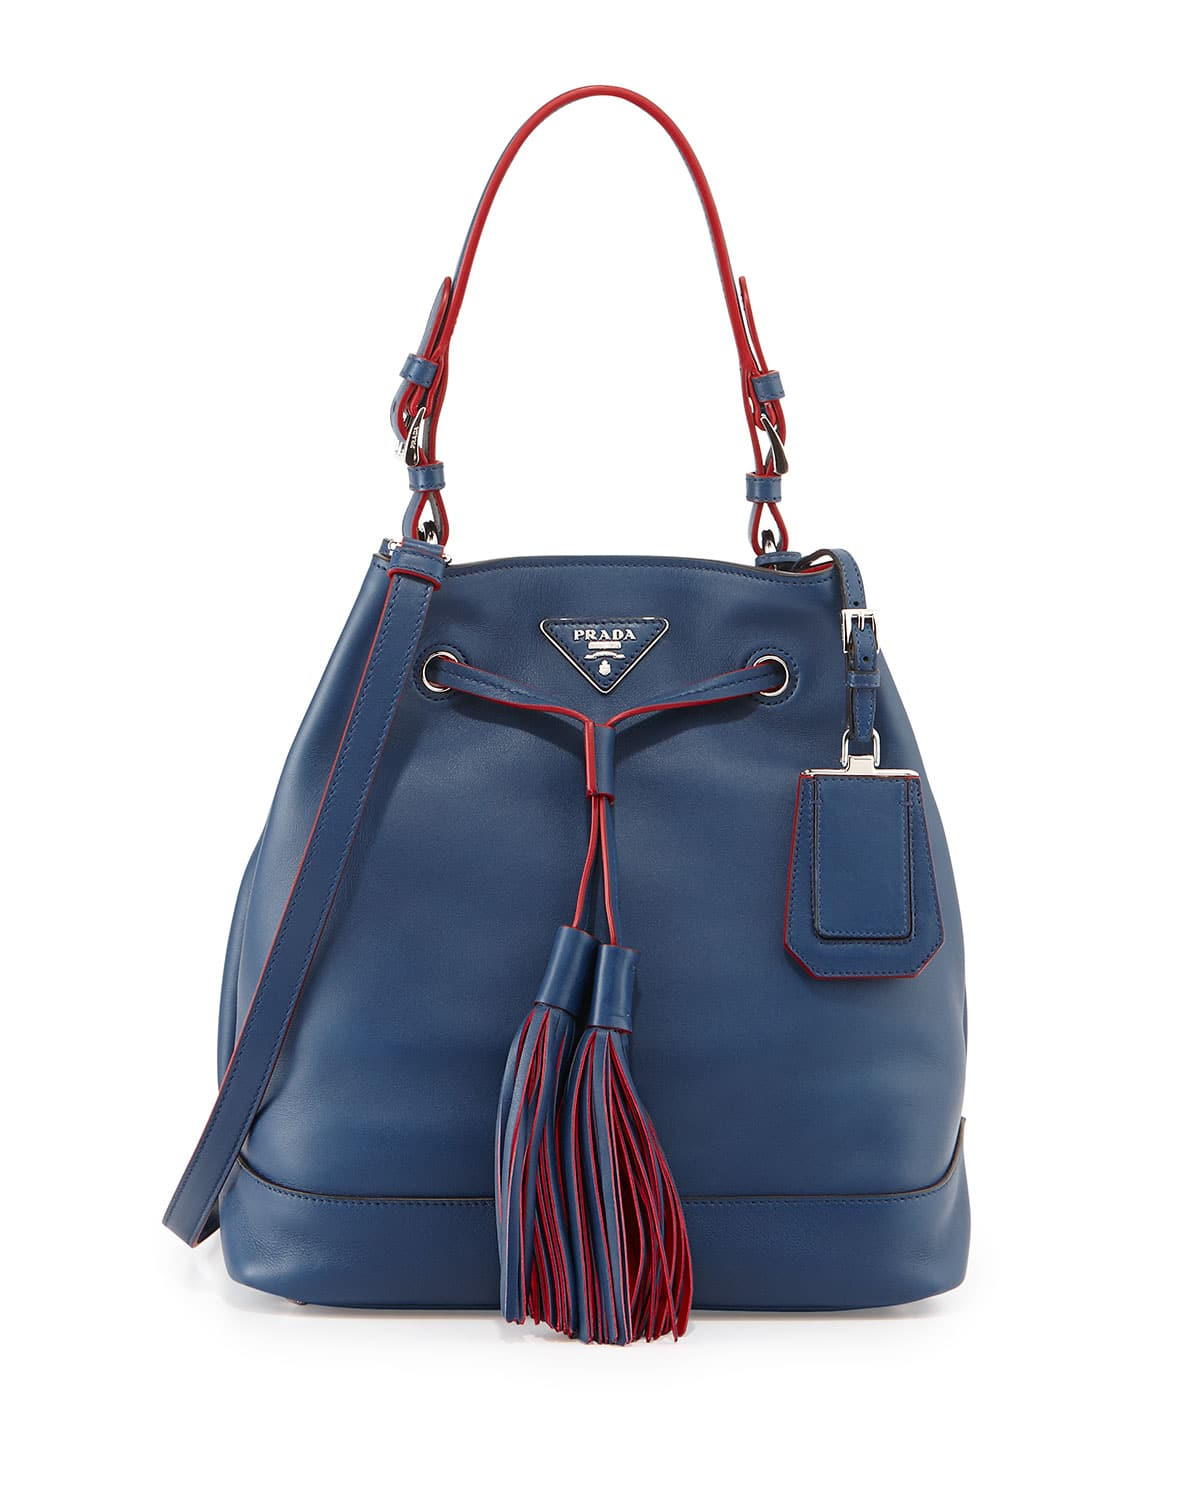 048069c7b5eb Prada Pre-Fall 2014 Bag Collection featuring new Double Totes in ...